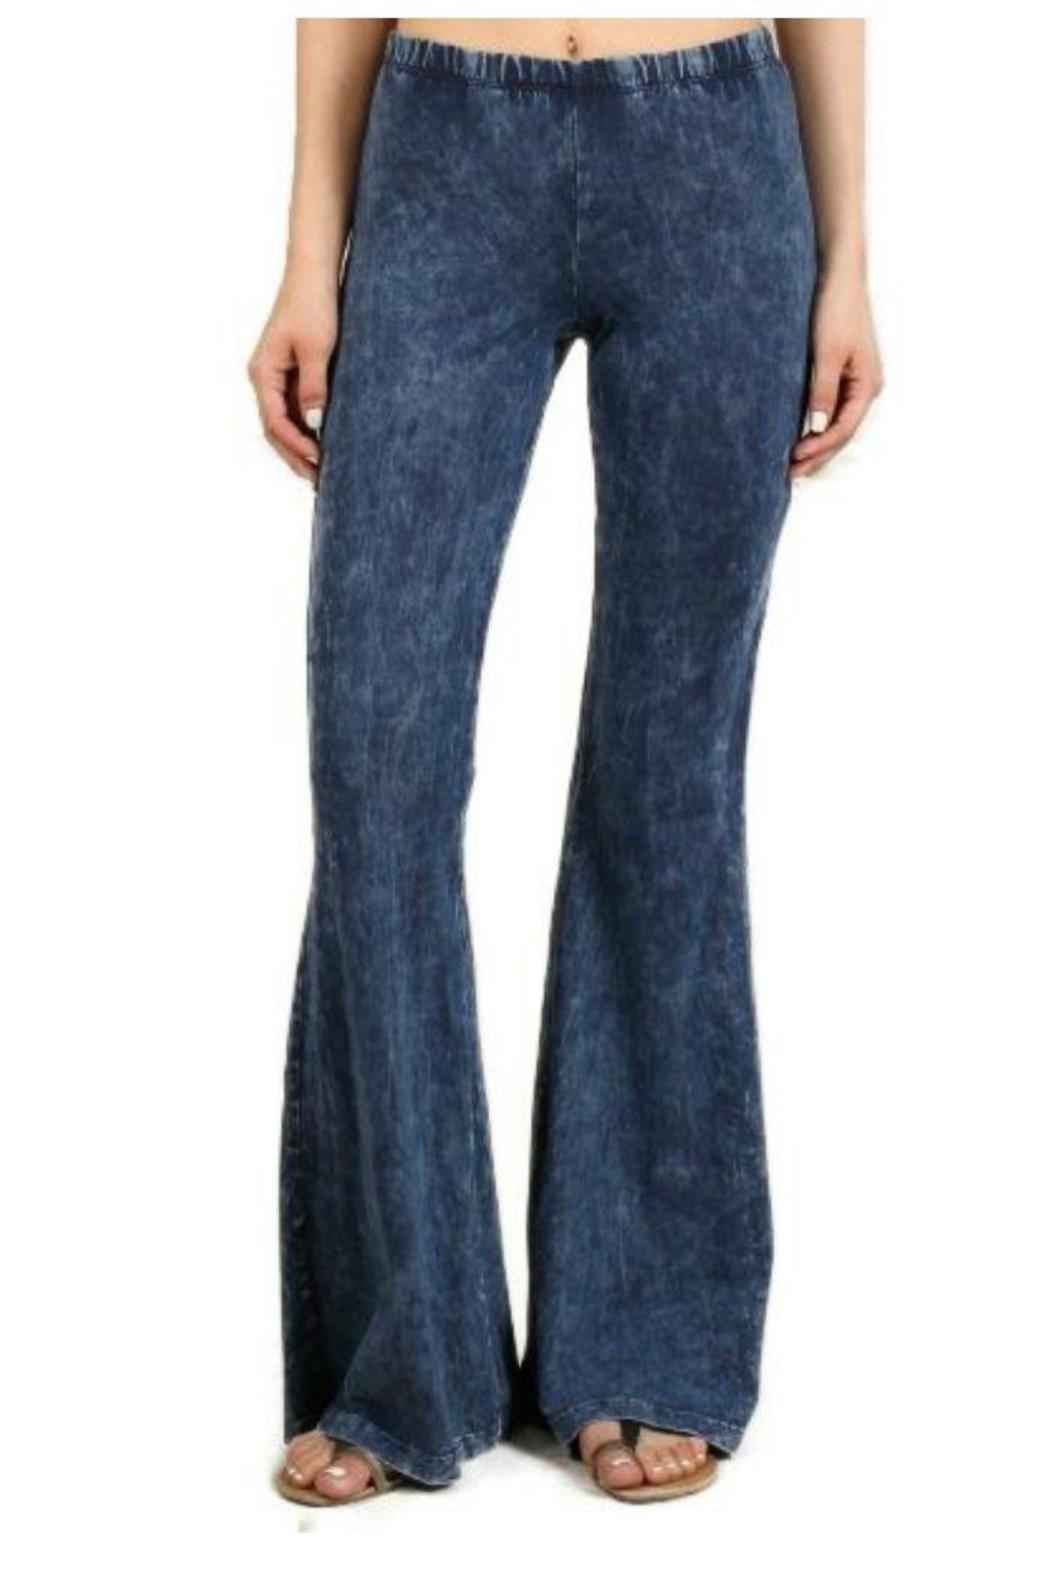 Chatoyant Bell Bottom Pants From Mississippi By Obsessions